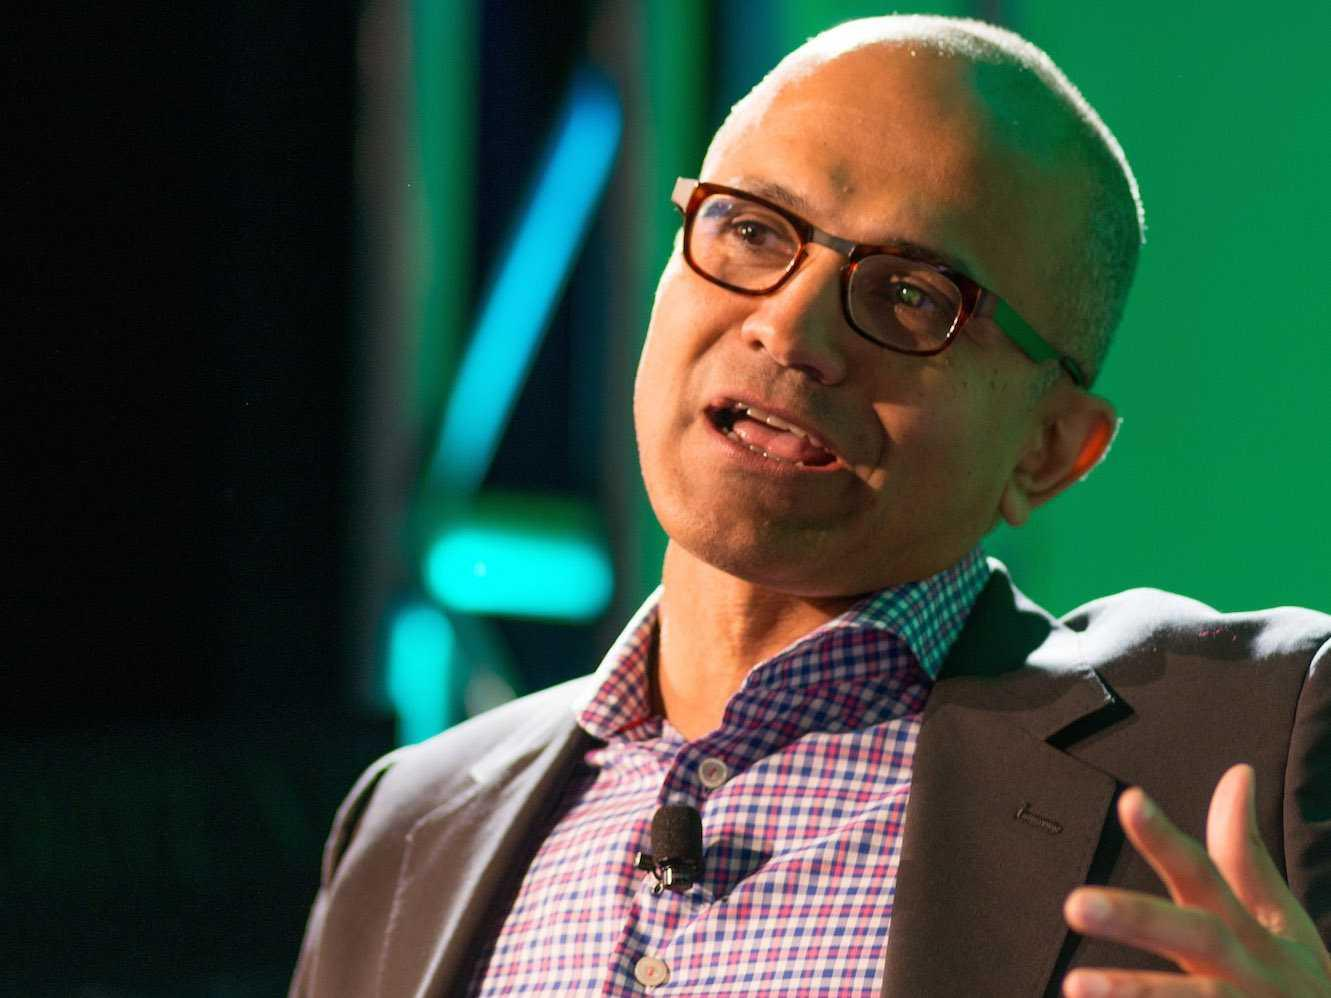 Microsoft's two traditional cash cows, Windows and Office, are shrinking like crazy